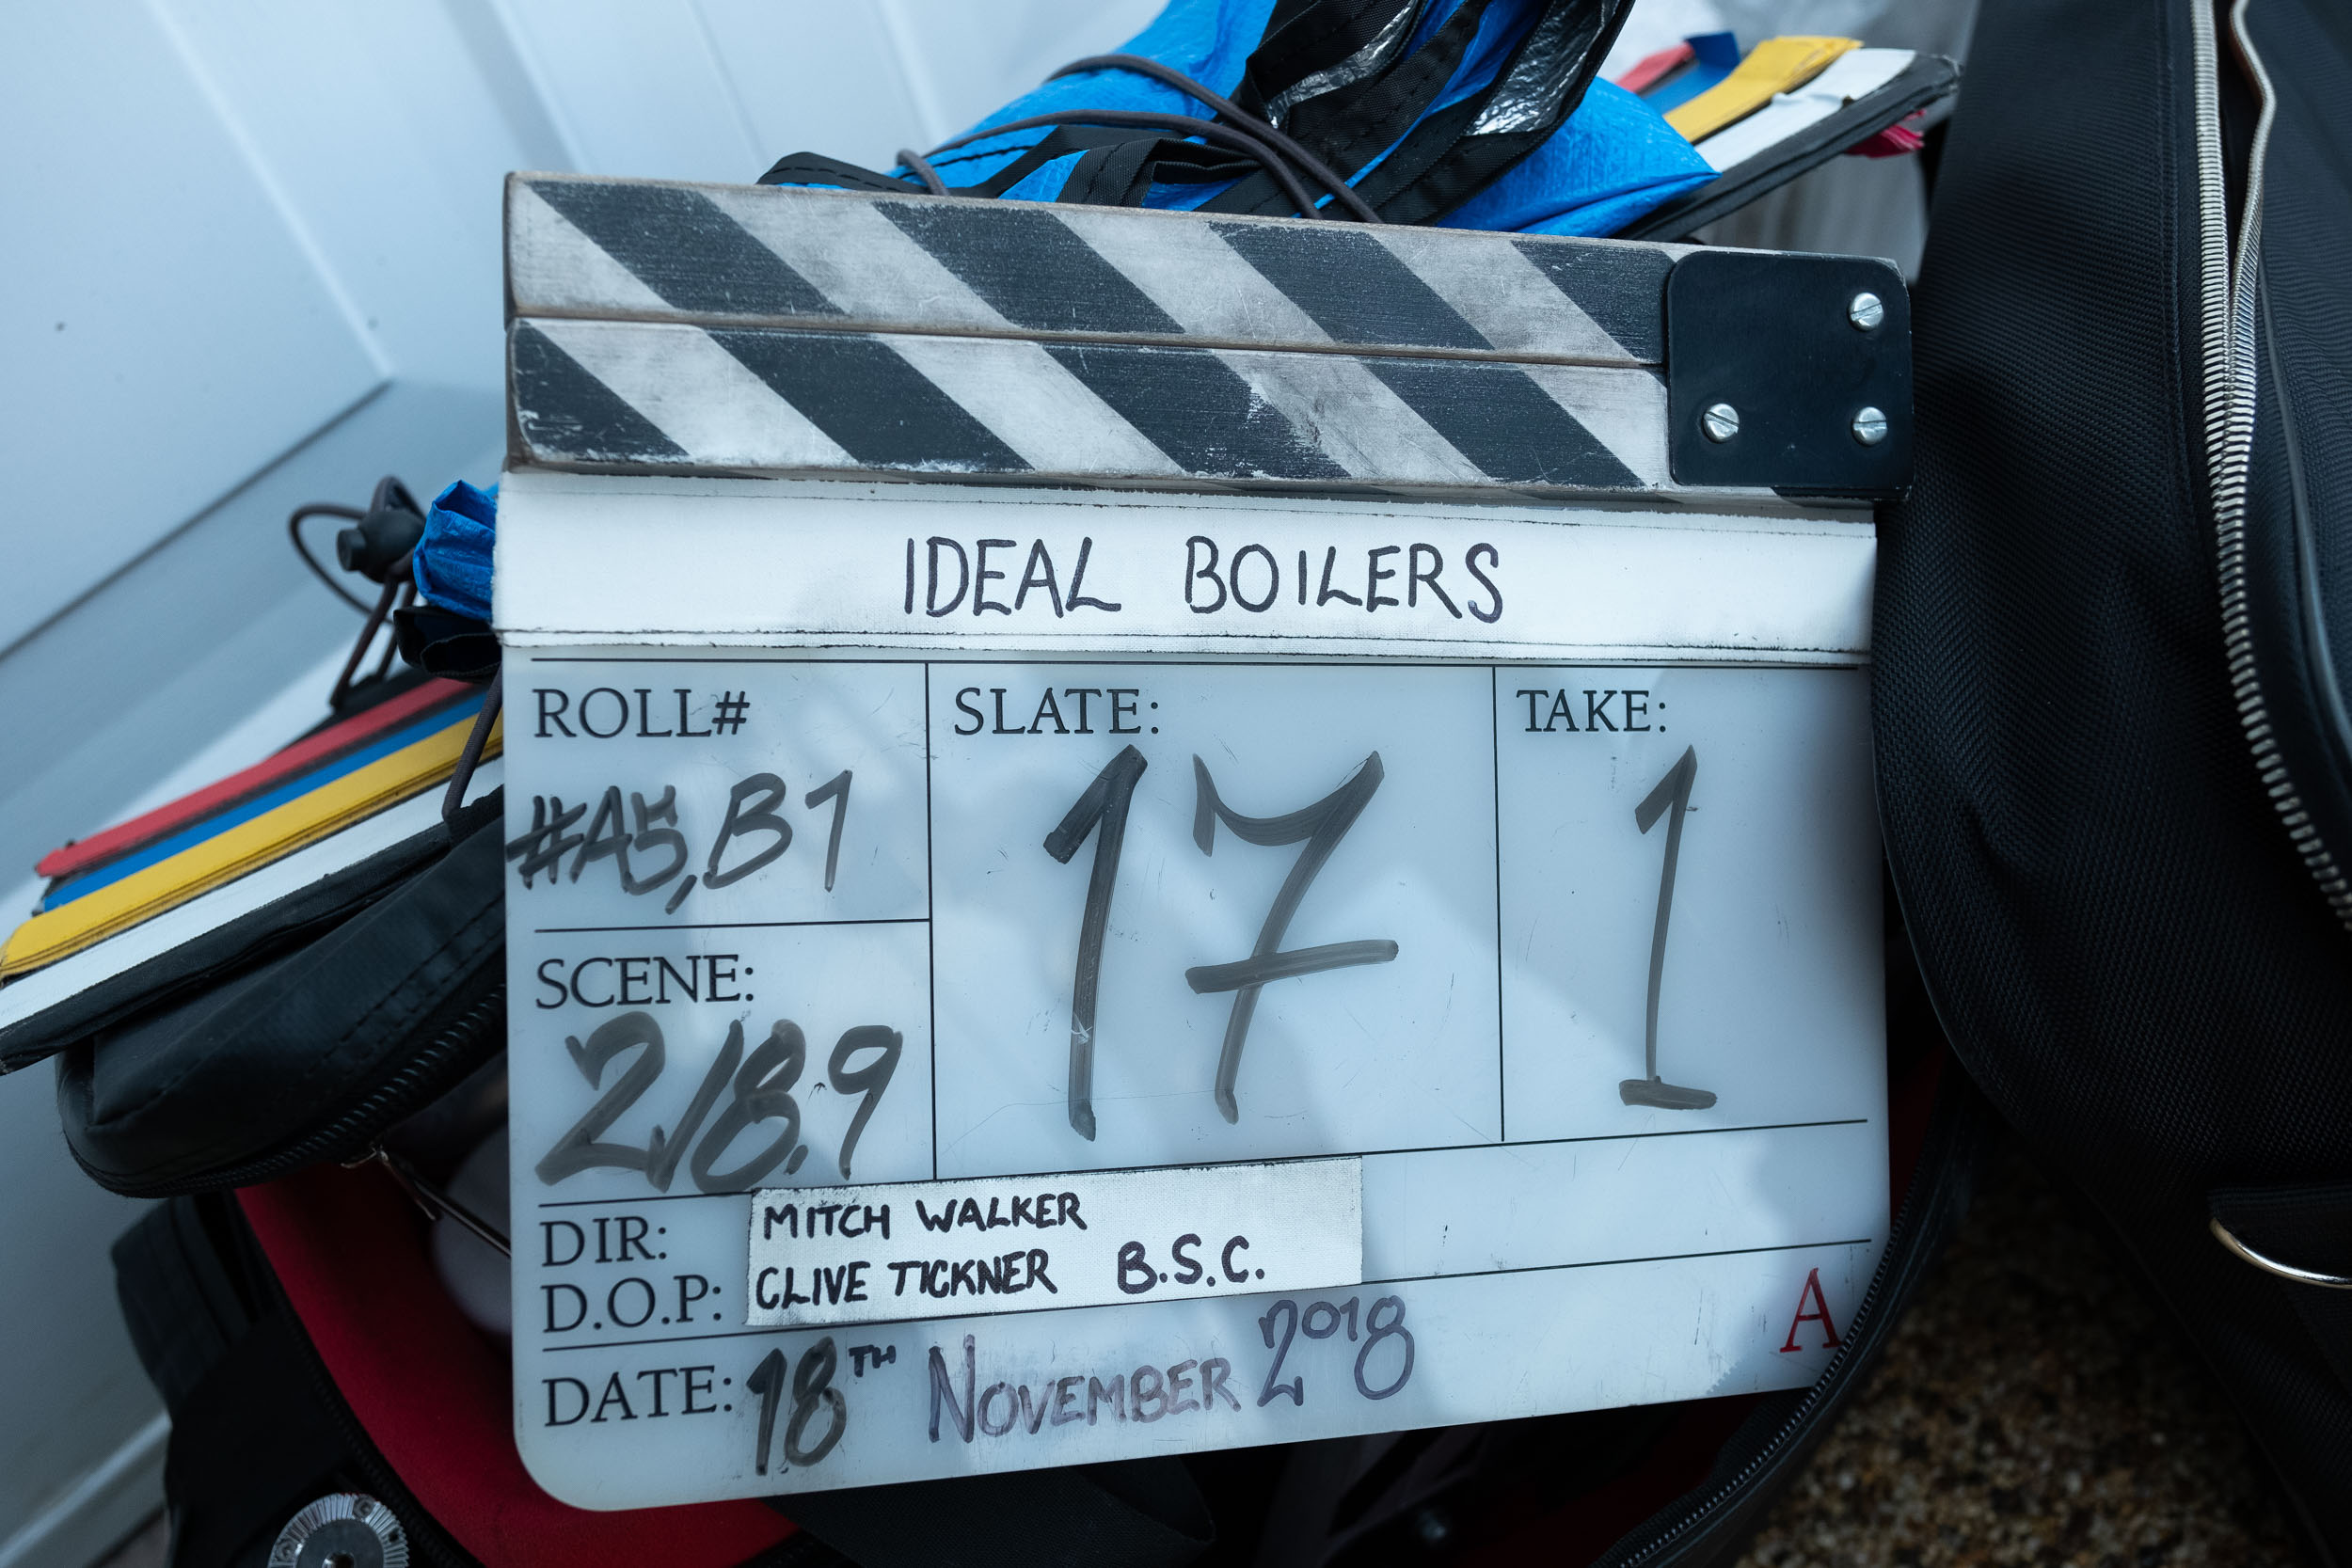 Clapper Board from Ideal Boilers commercial in Warrington, Manchester